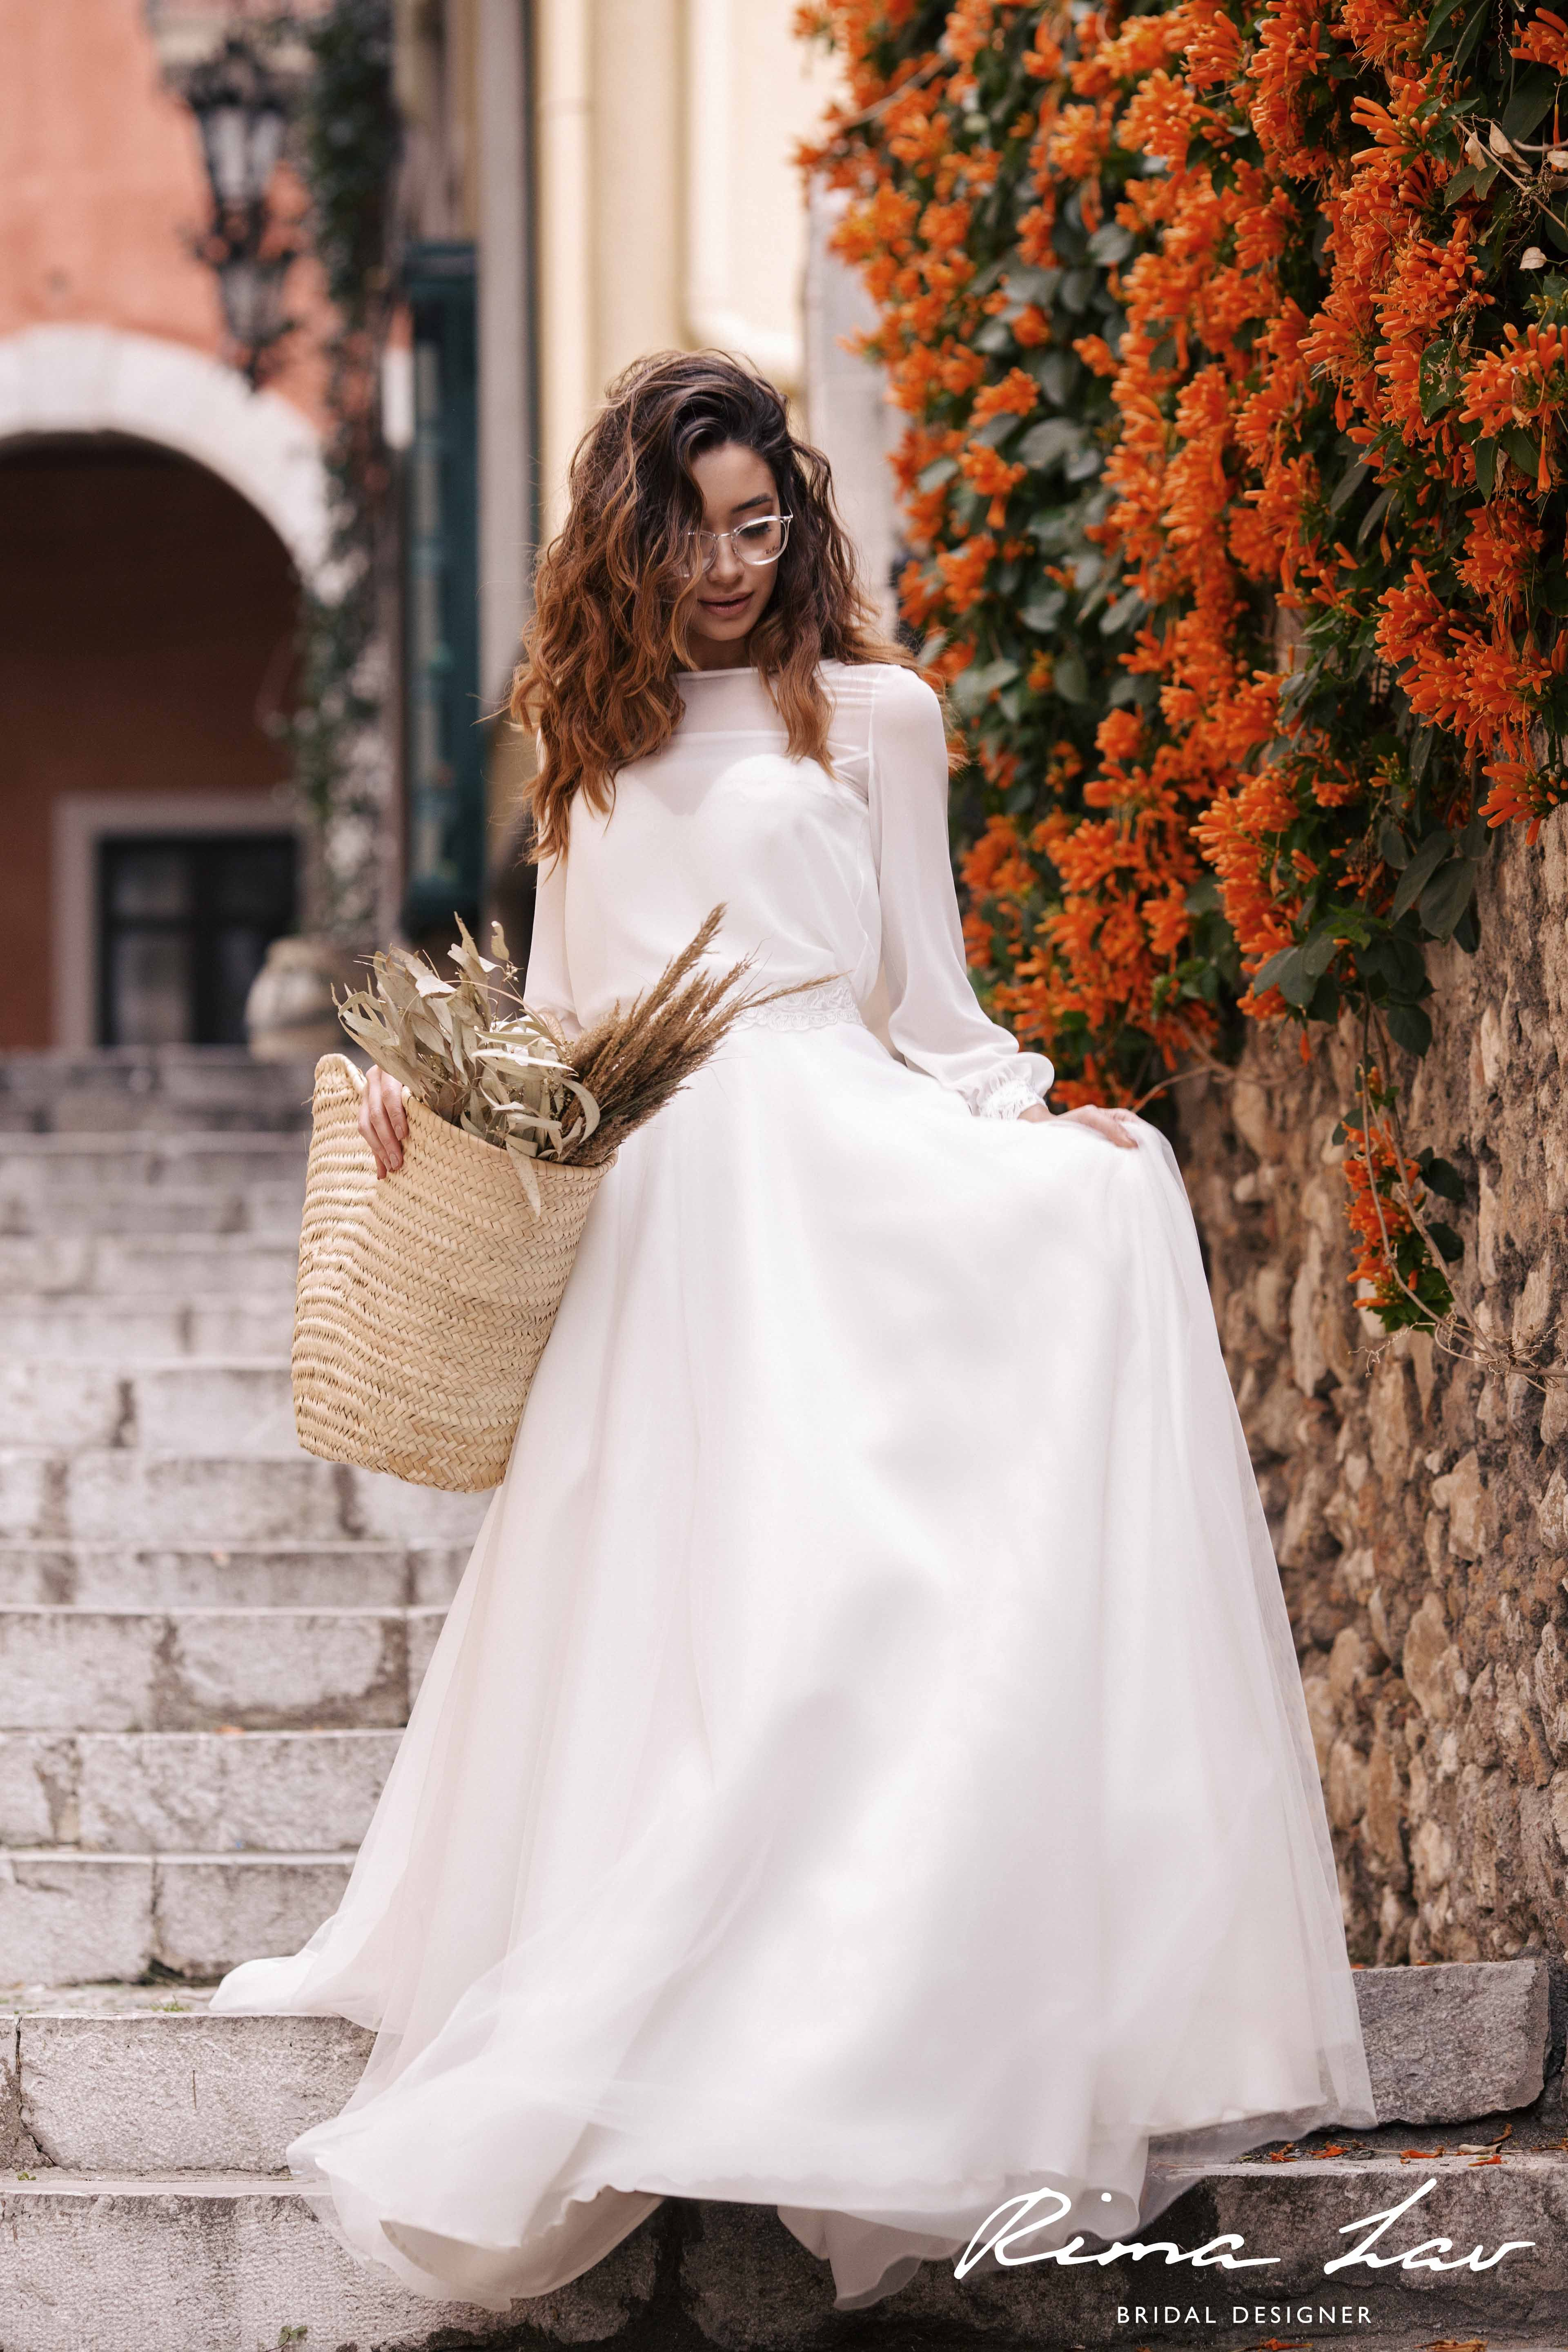 Rima lav liv and theron blouse wedding gown wedding dress with